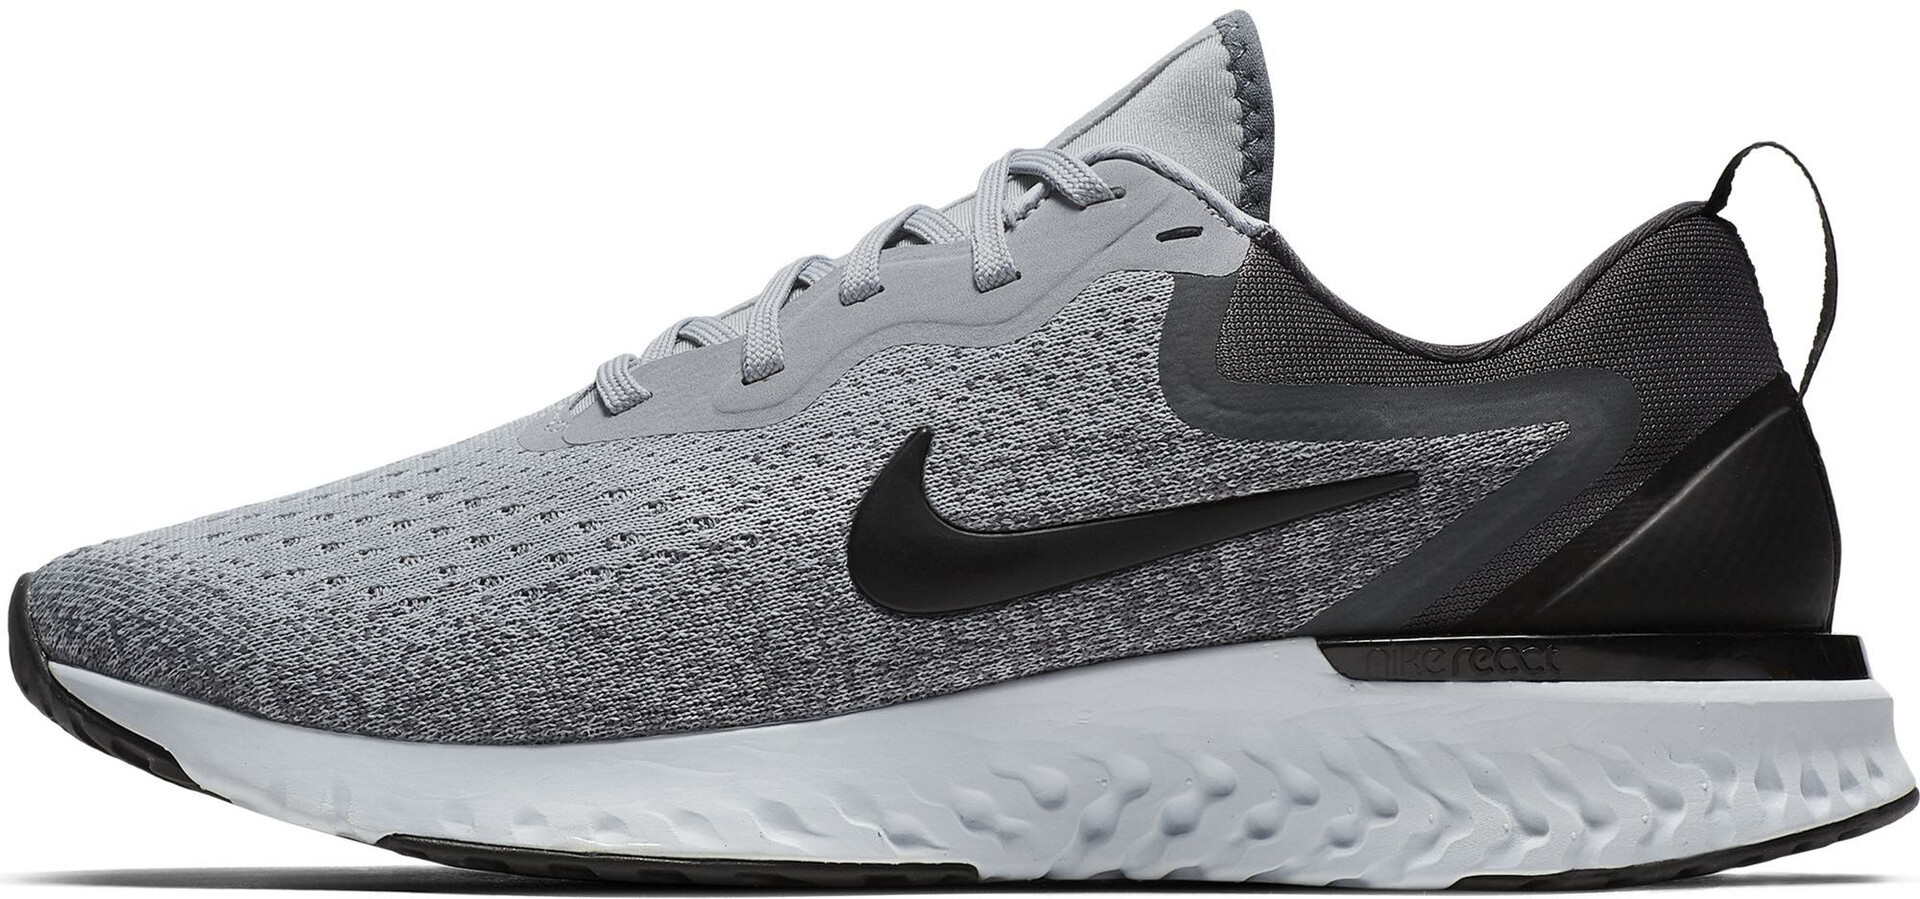 official photos 1e123 5397a ... discount code for nike odyssey react chaussures running femme gris  4f6e7 7bd36